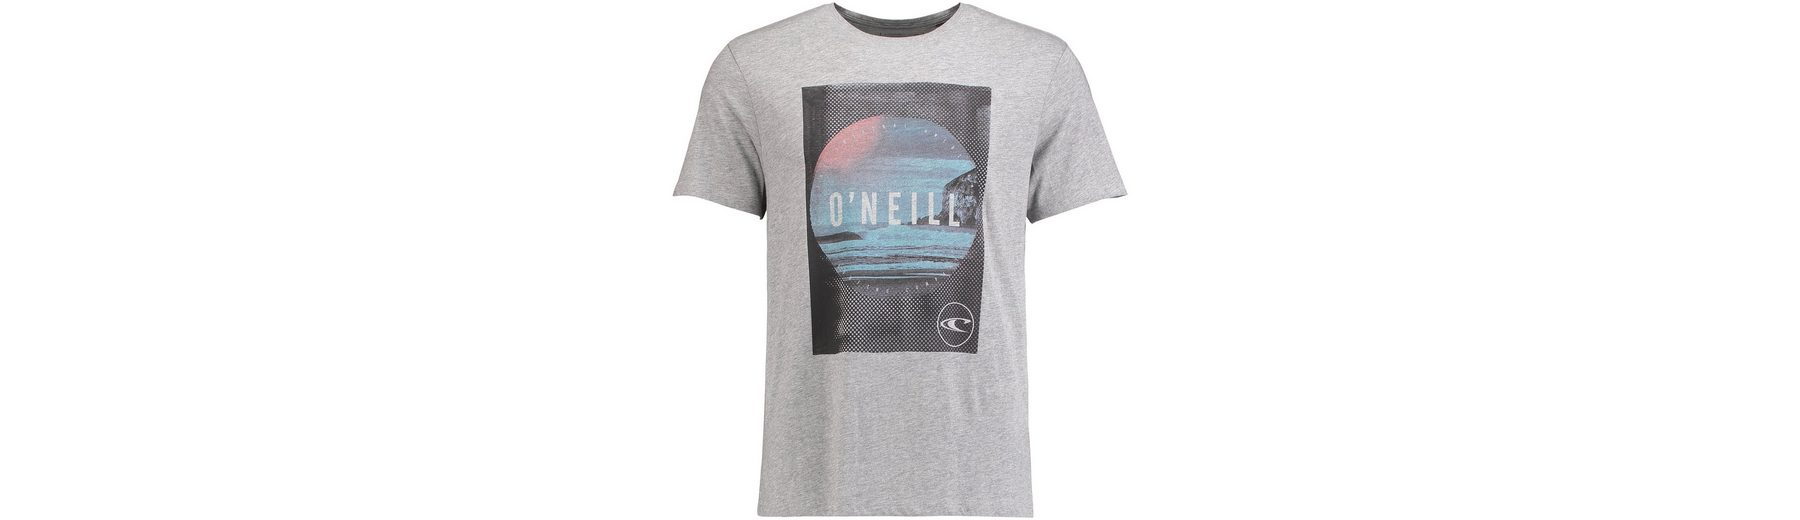 O'Neill T-Shirts kurzärmlig Venturer t-shirt Auslass Nicekicks Amazon Footaction 6mbJ8kXv